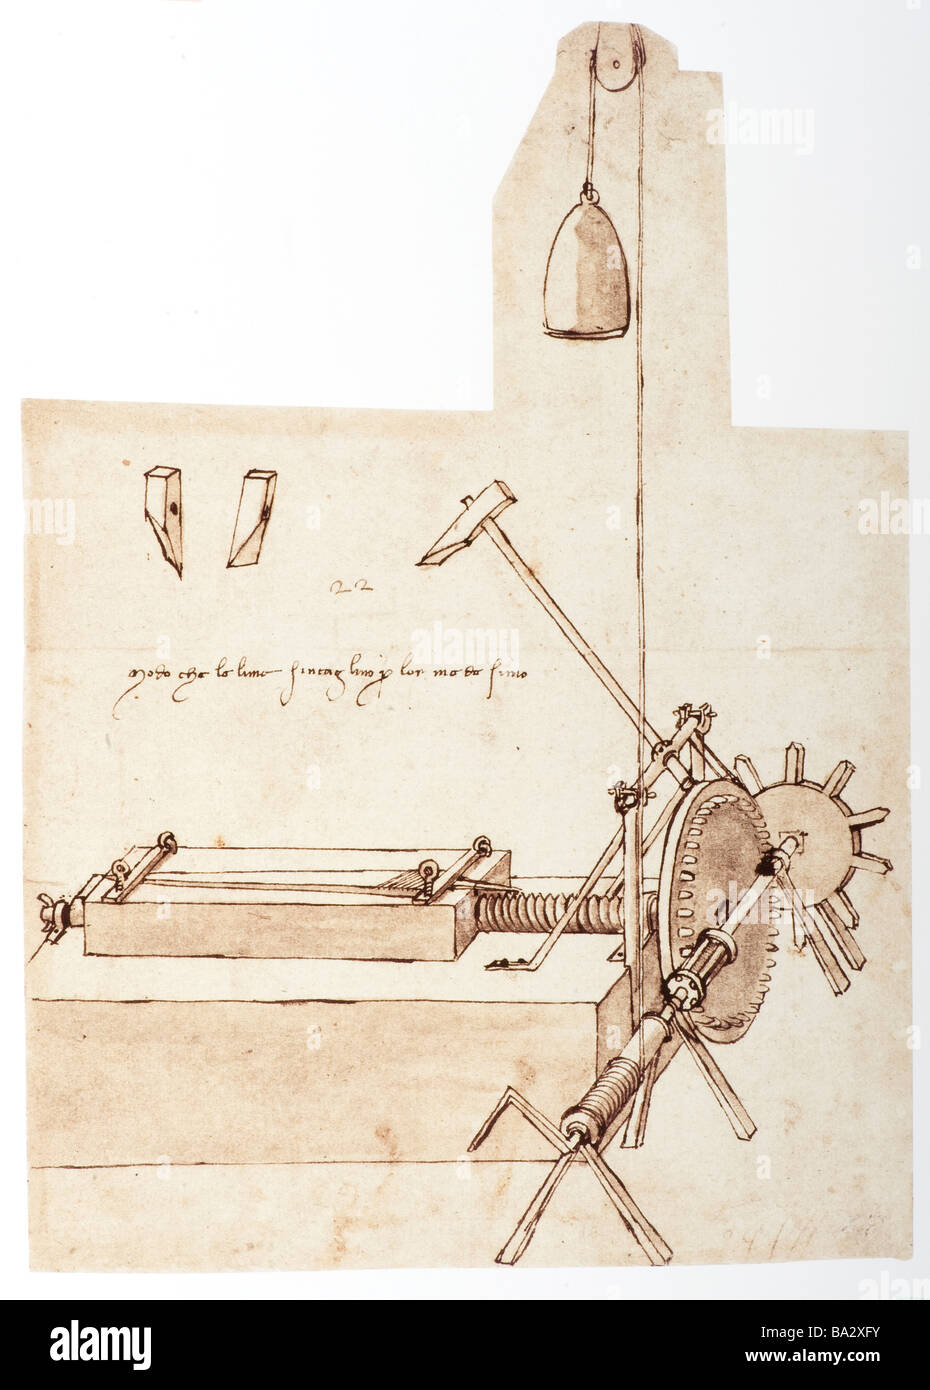 Drawing of a File Cutting Machine by Leonardo da Vinci 1480 pen and ink - Stock Image